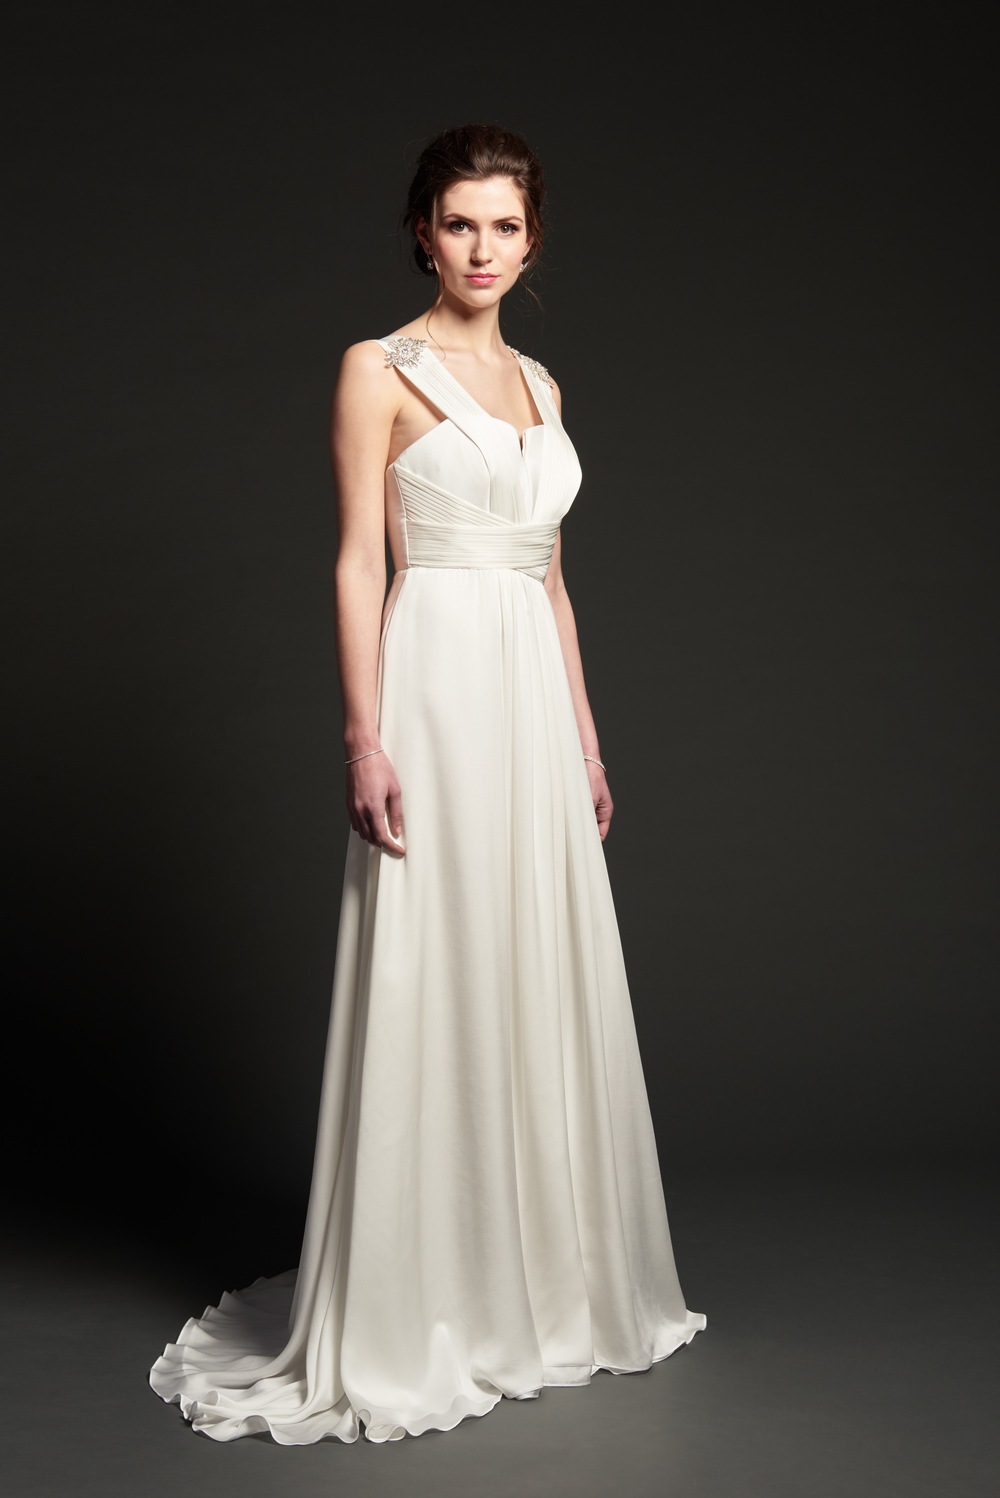 160213_GEMMA LEAKEY BRIDAL - DRESS 04-01.jpg